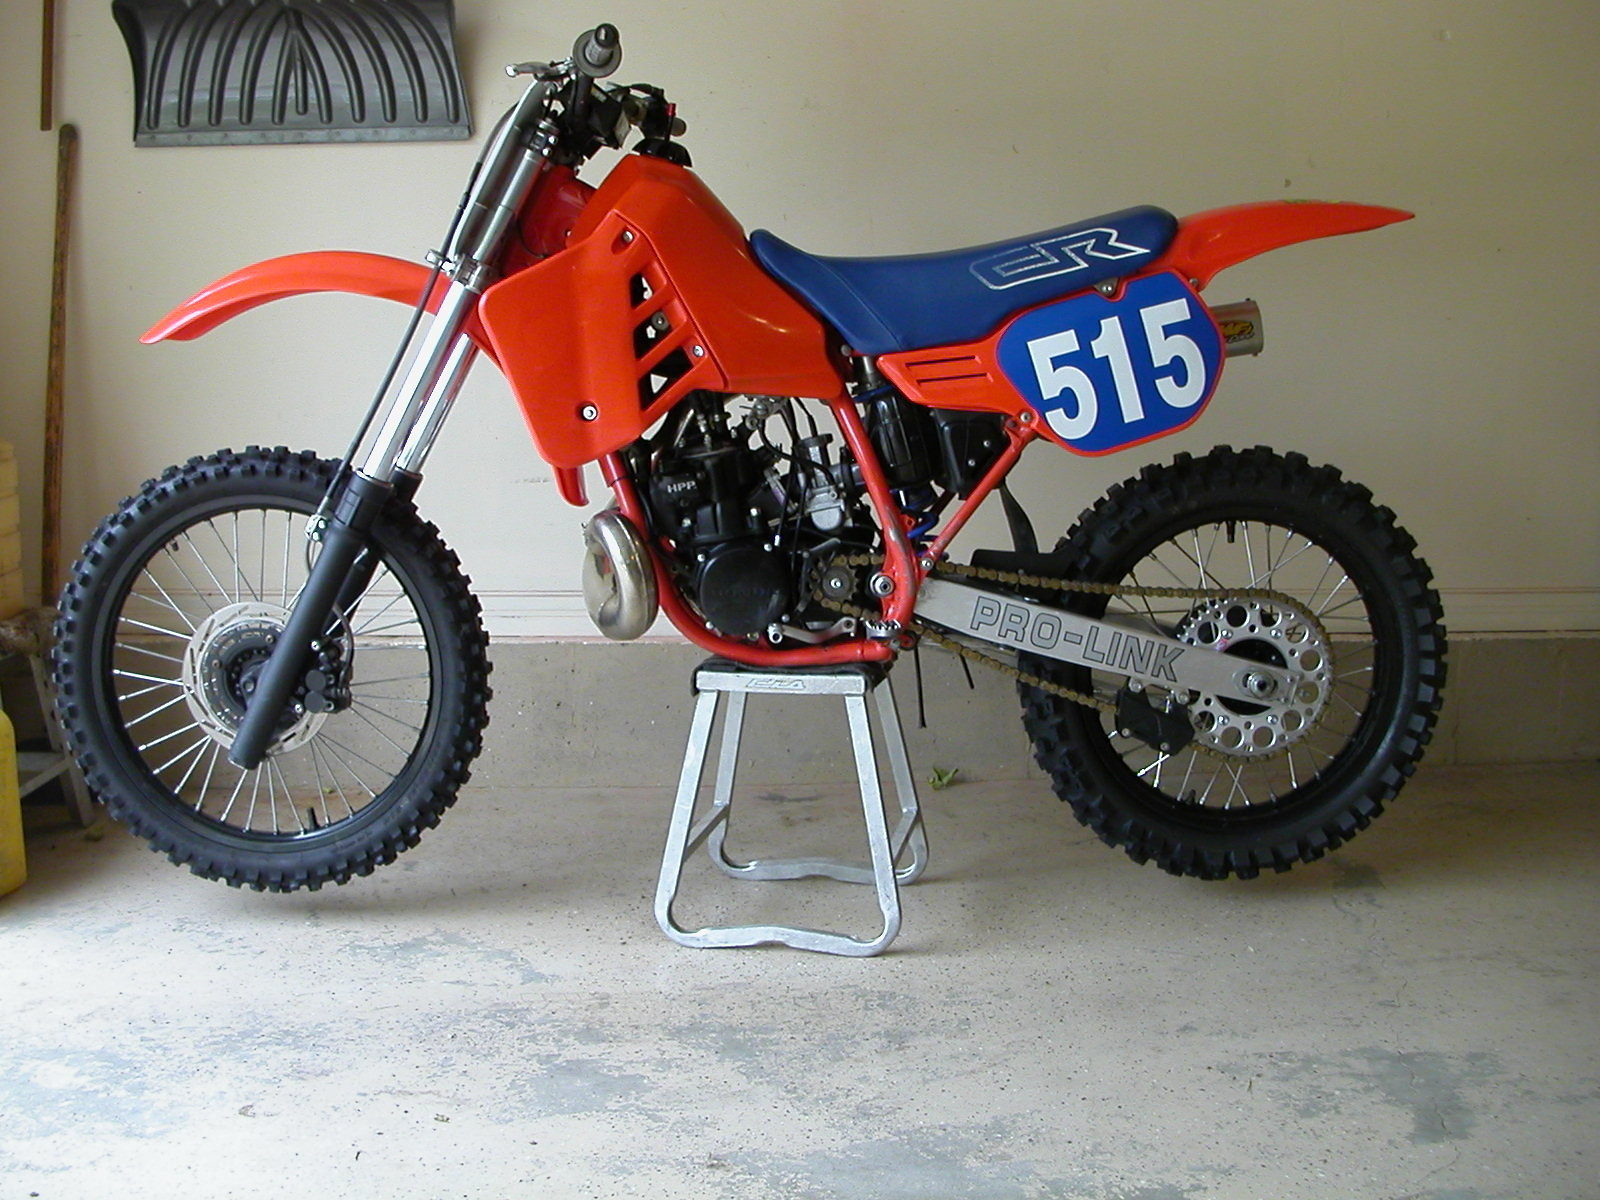 CR250 - moto922 - Motocross Pictures - Vital MX